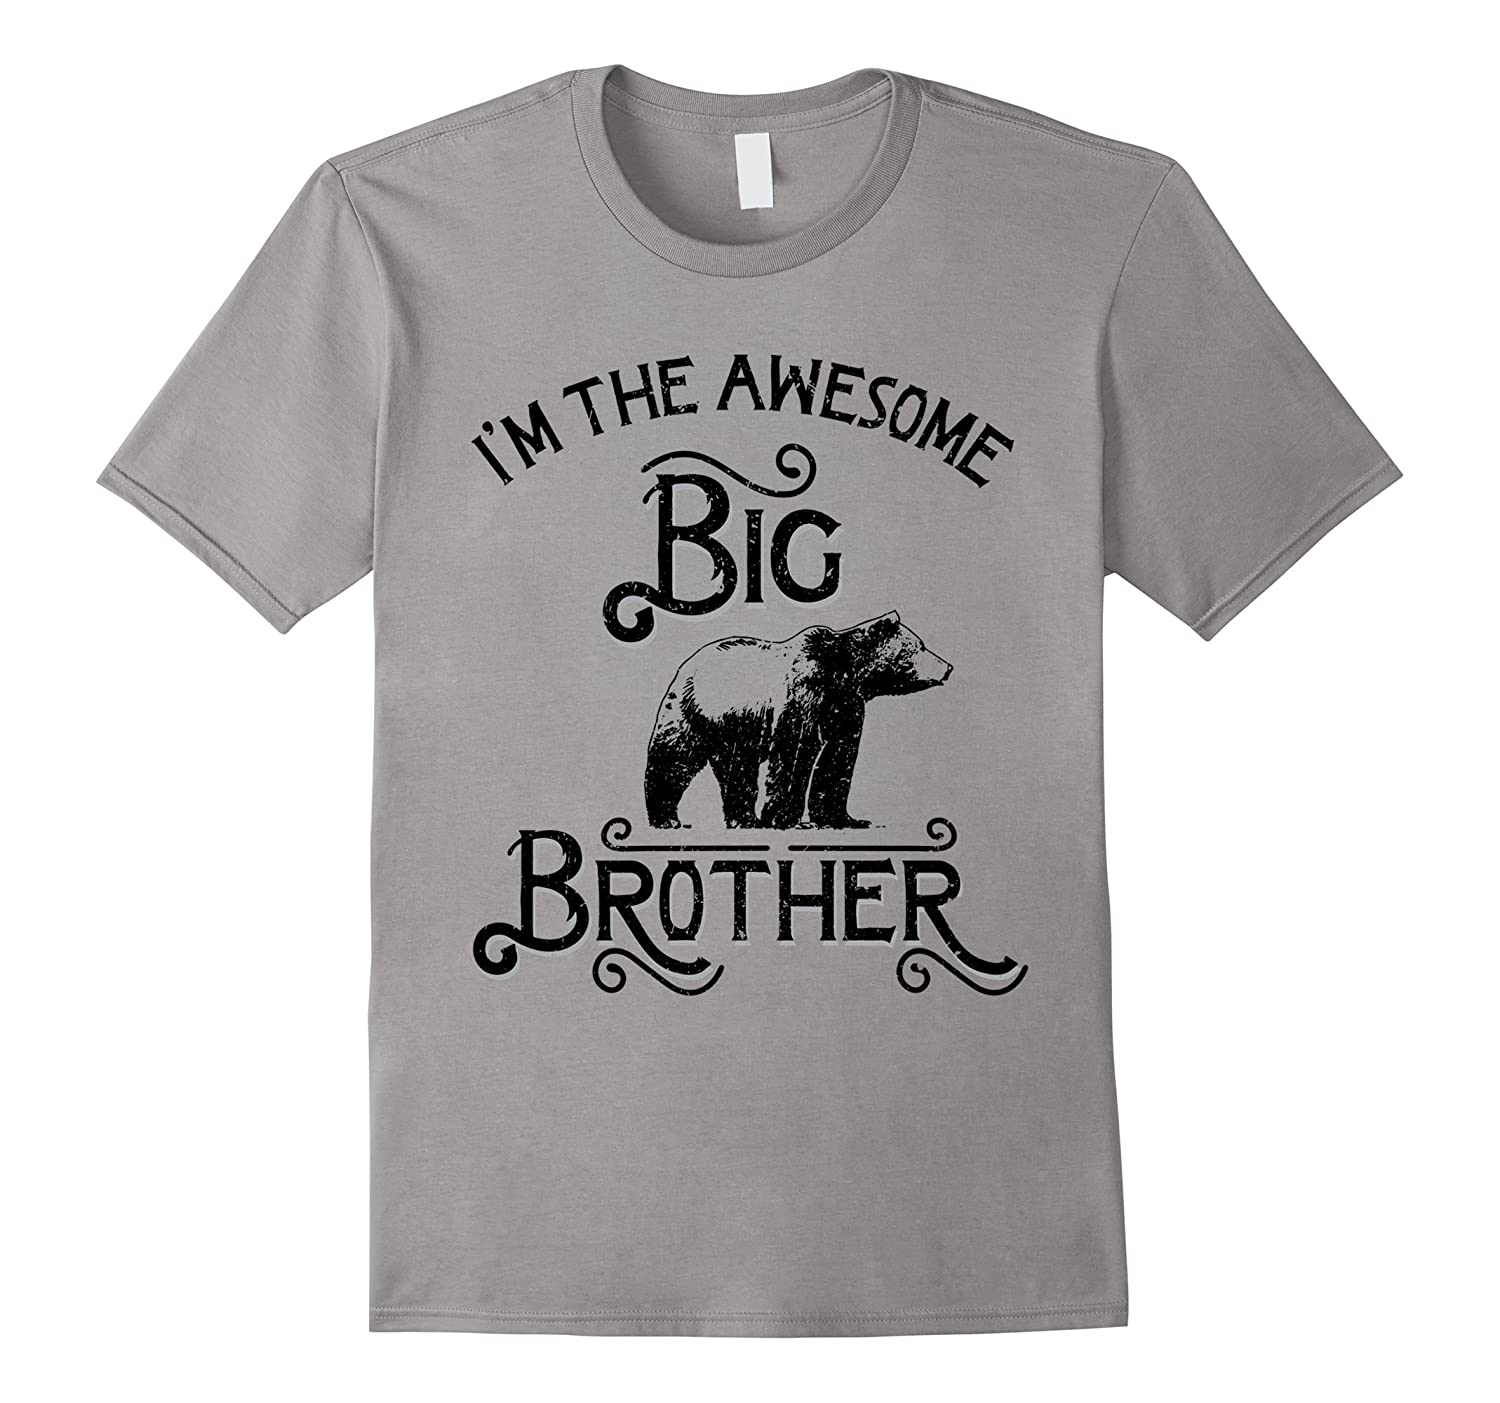 Im The Awesome Big Brother T Shirt - Promot to Brother